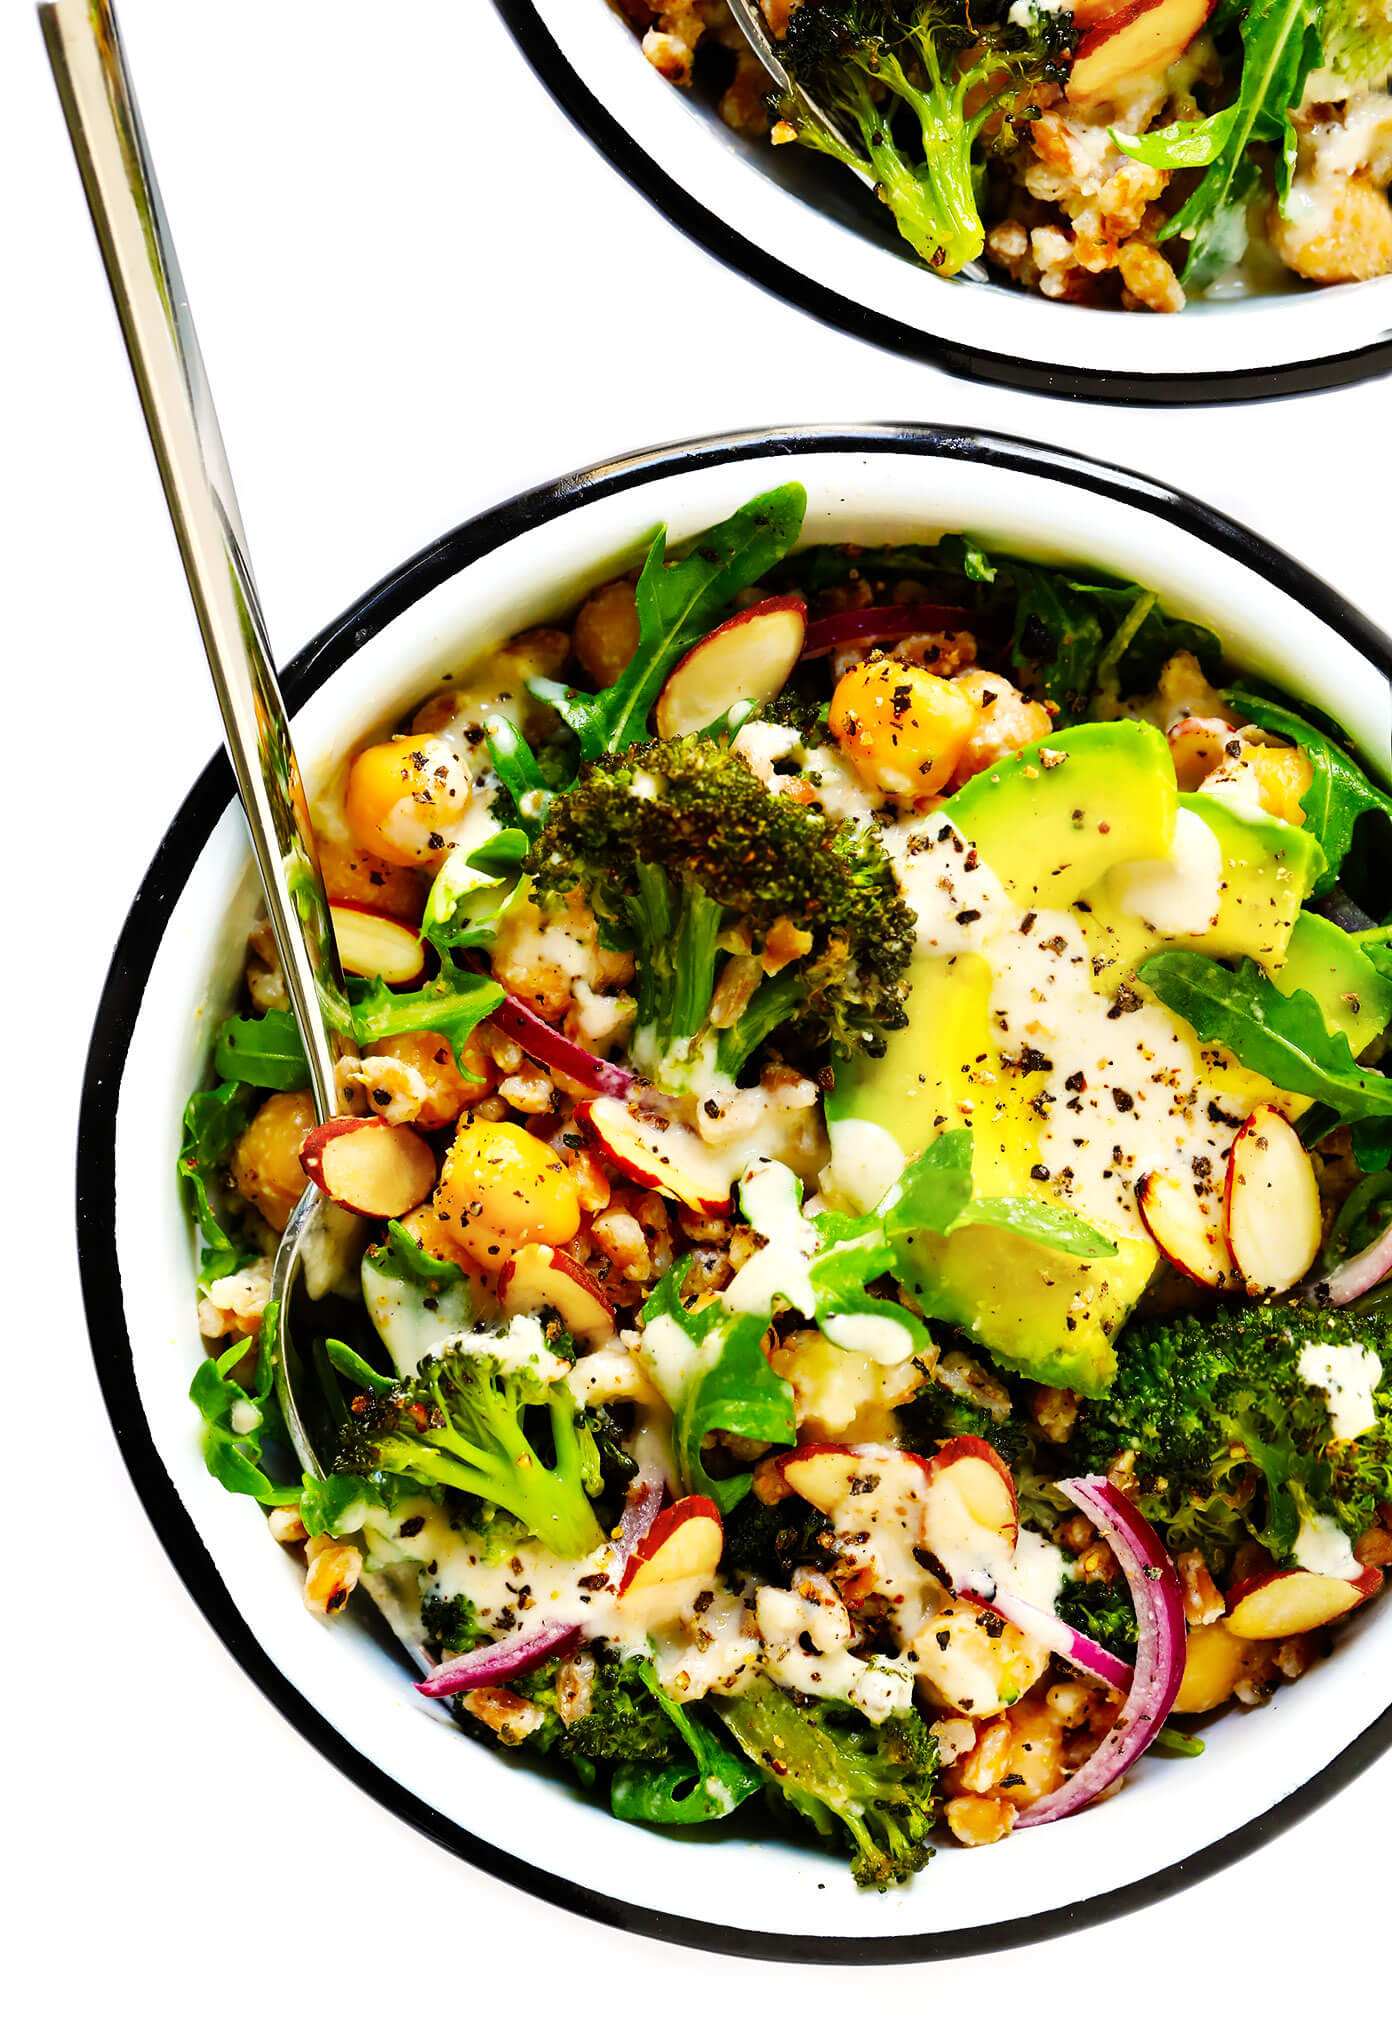 Roasted Broccoli and Farro Bowls